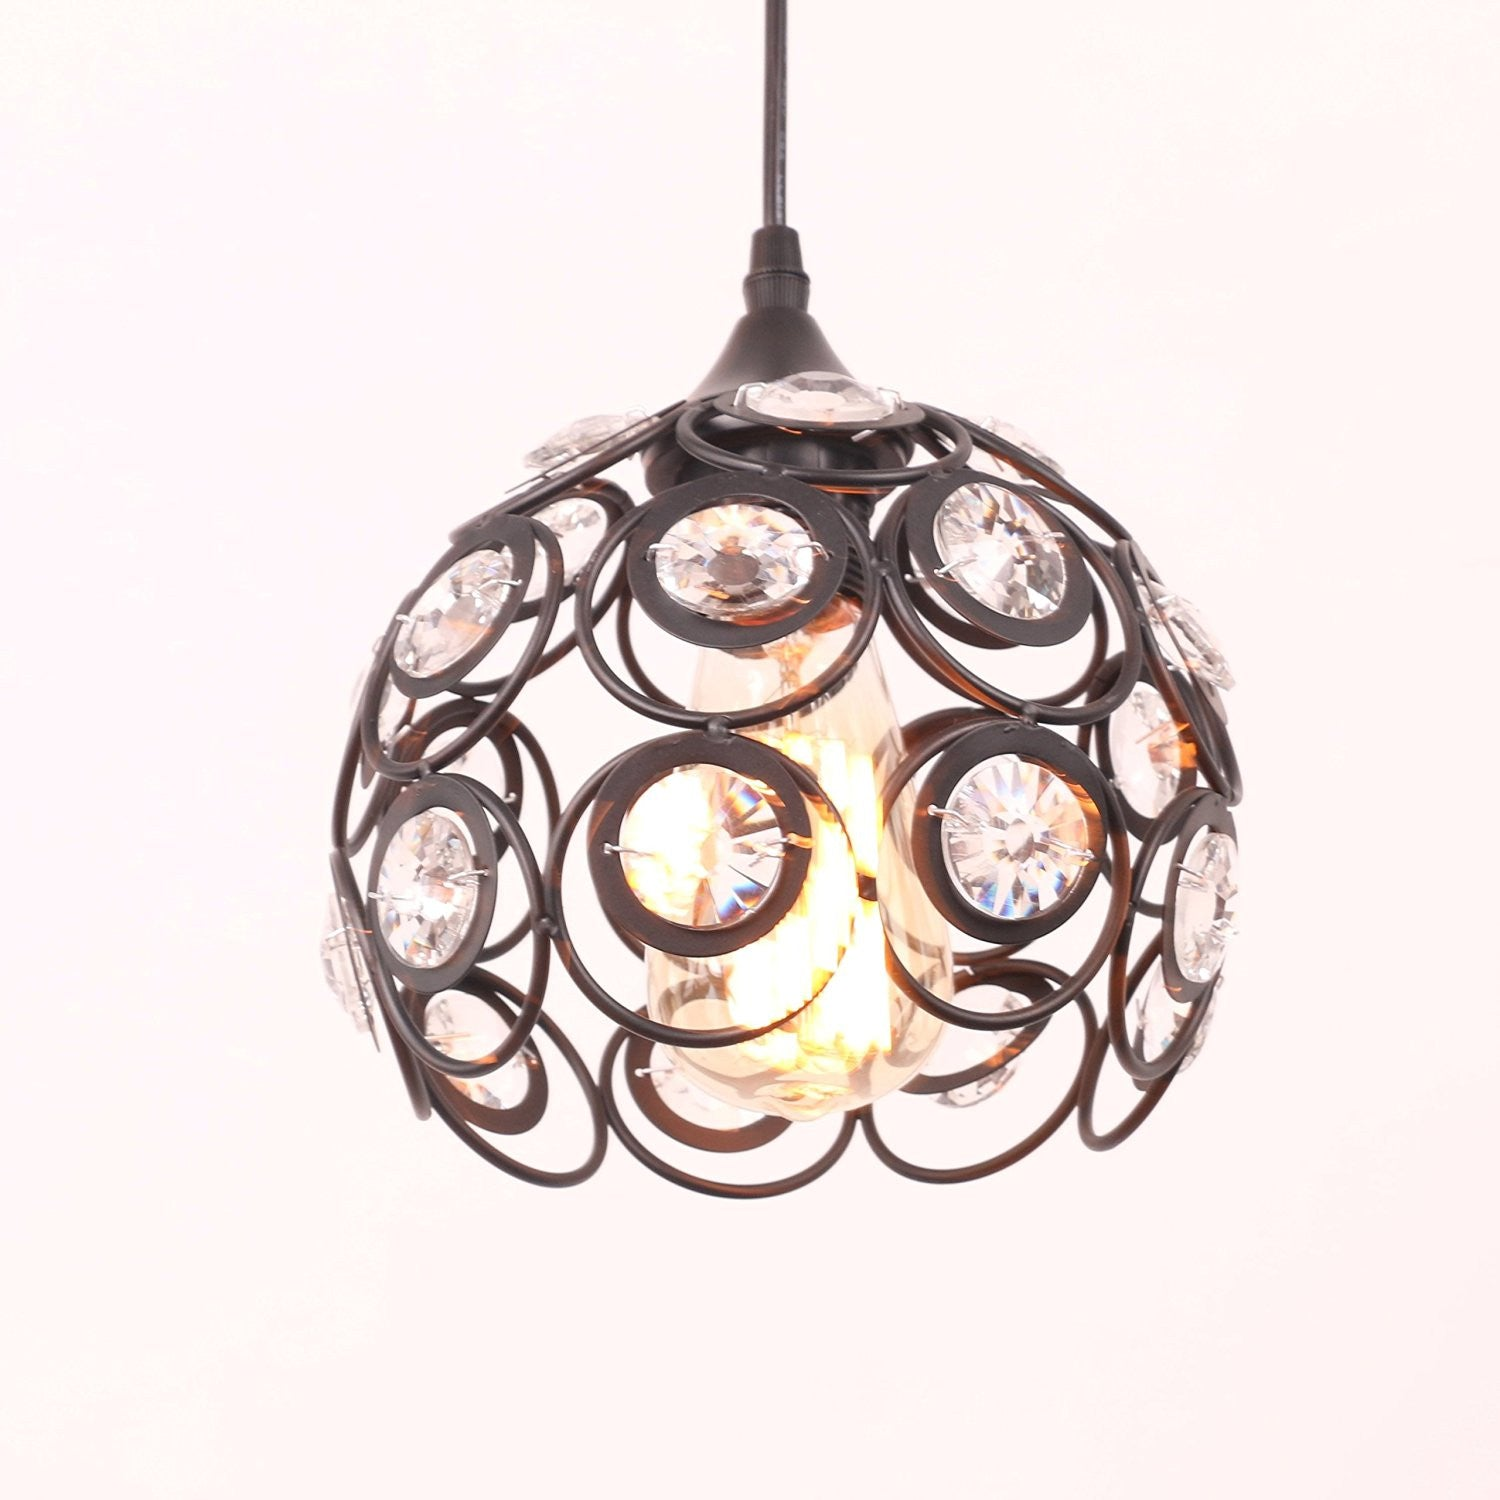 Unitary Brand Antique Black Metal Crystal Pendant Light with 1 E26 Bulb Socket 40W Painted Finish